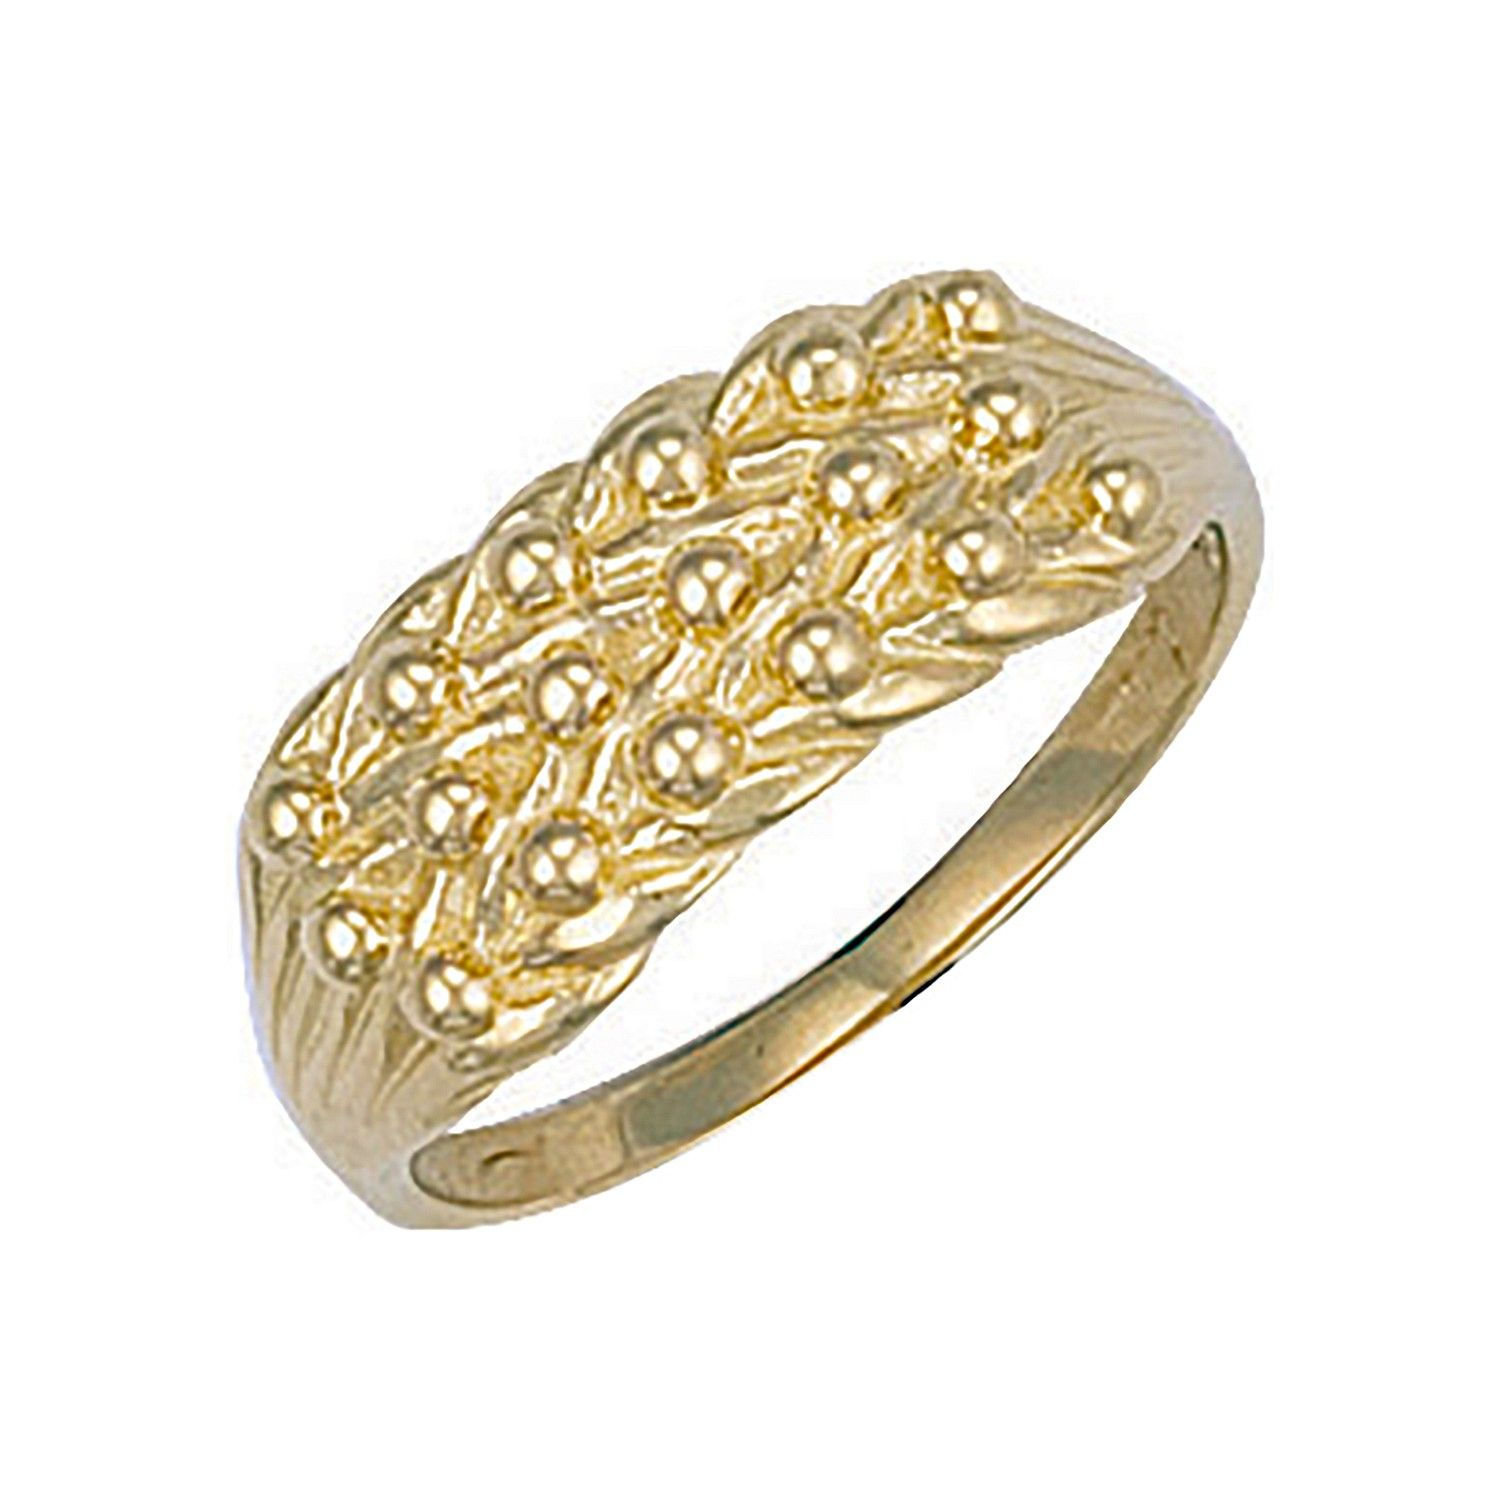 9ct Yellow Gold Light Weight 3 Row Keeper Ring 8mm